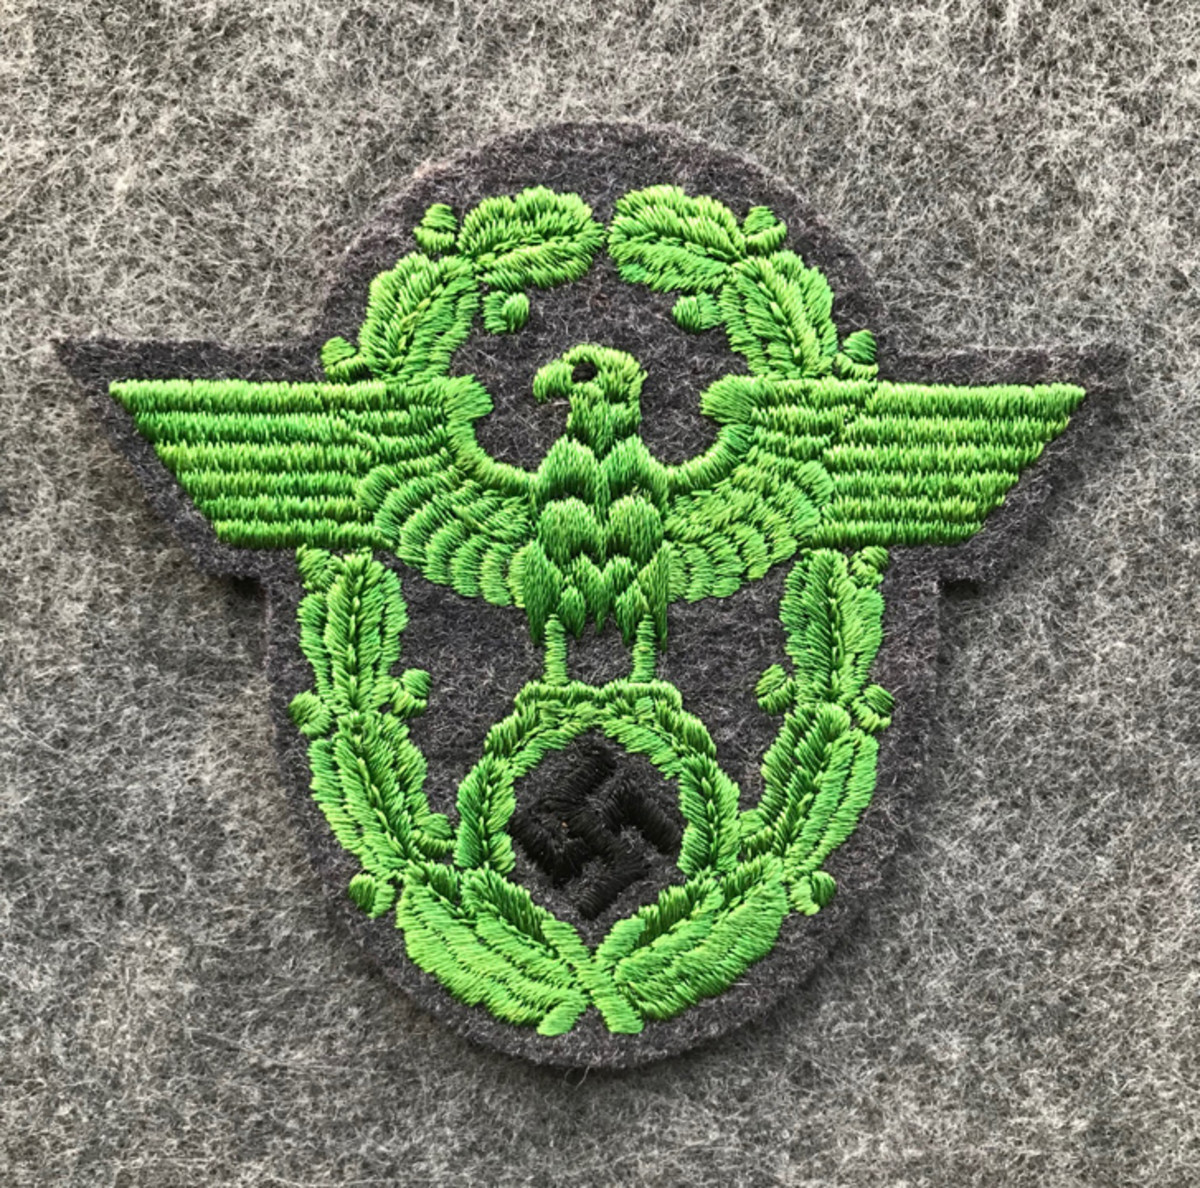 A German Enlisted Schutzpolizei Municipal police sleeve eagle. This type of police patch is constructed with a machine embroidered bright green national eagle with a black swastika on bluish-green wool cloth. This type of German WWII police patch retails for around $55-$70.